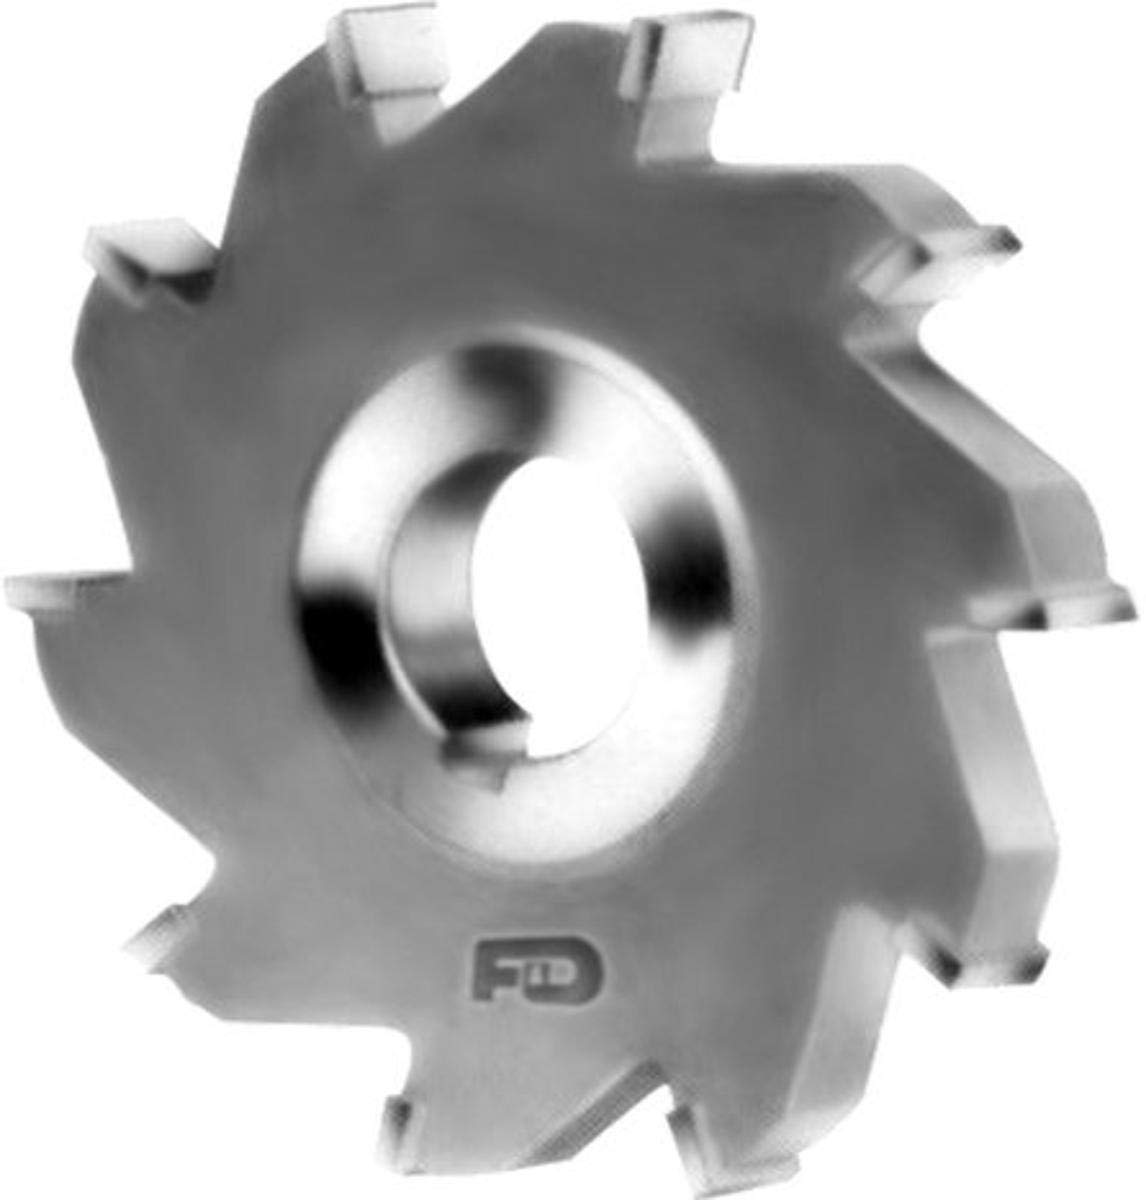 F&D Tool Company 12084-SC3081 Carbide Tipped Side Milling Cutter for Steel, 1